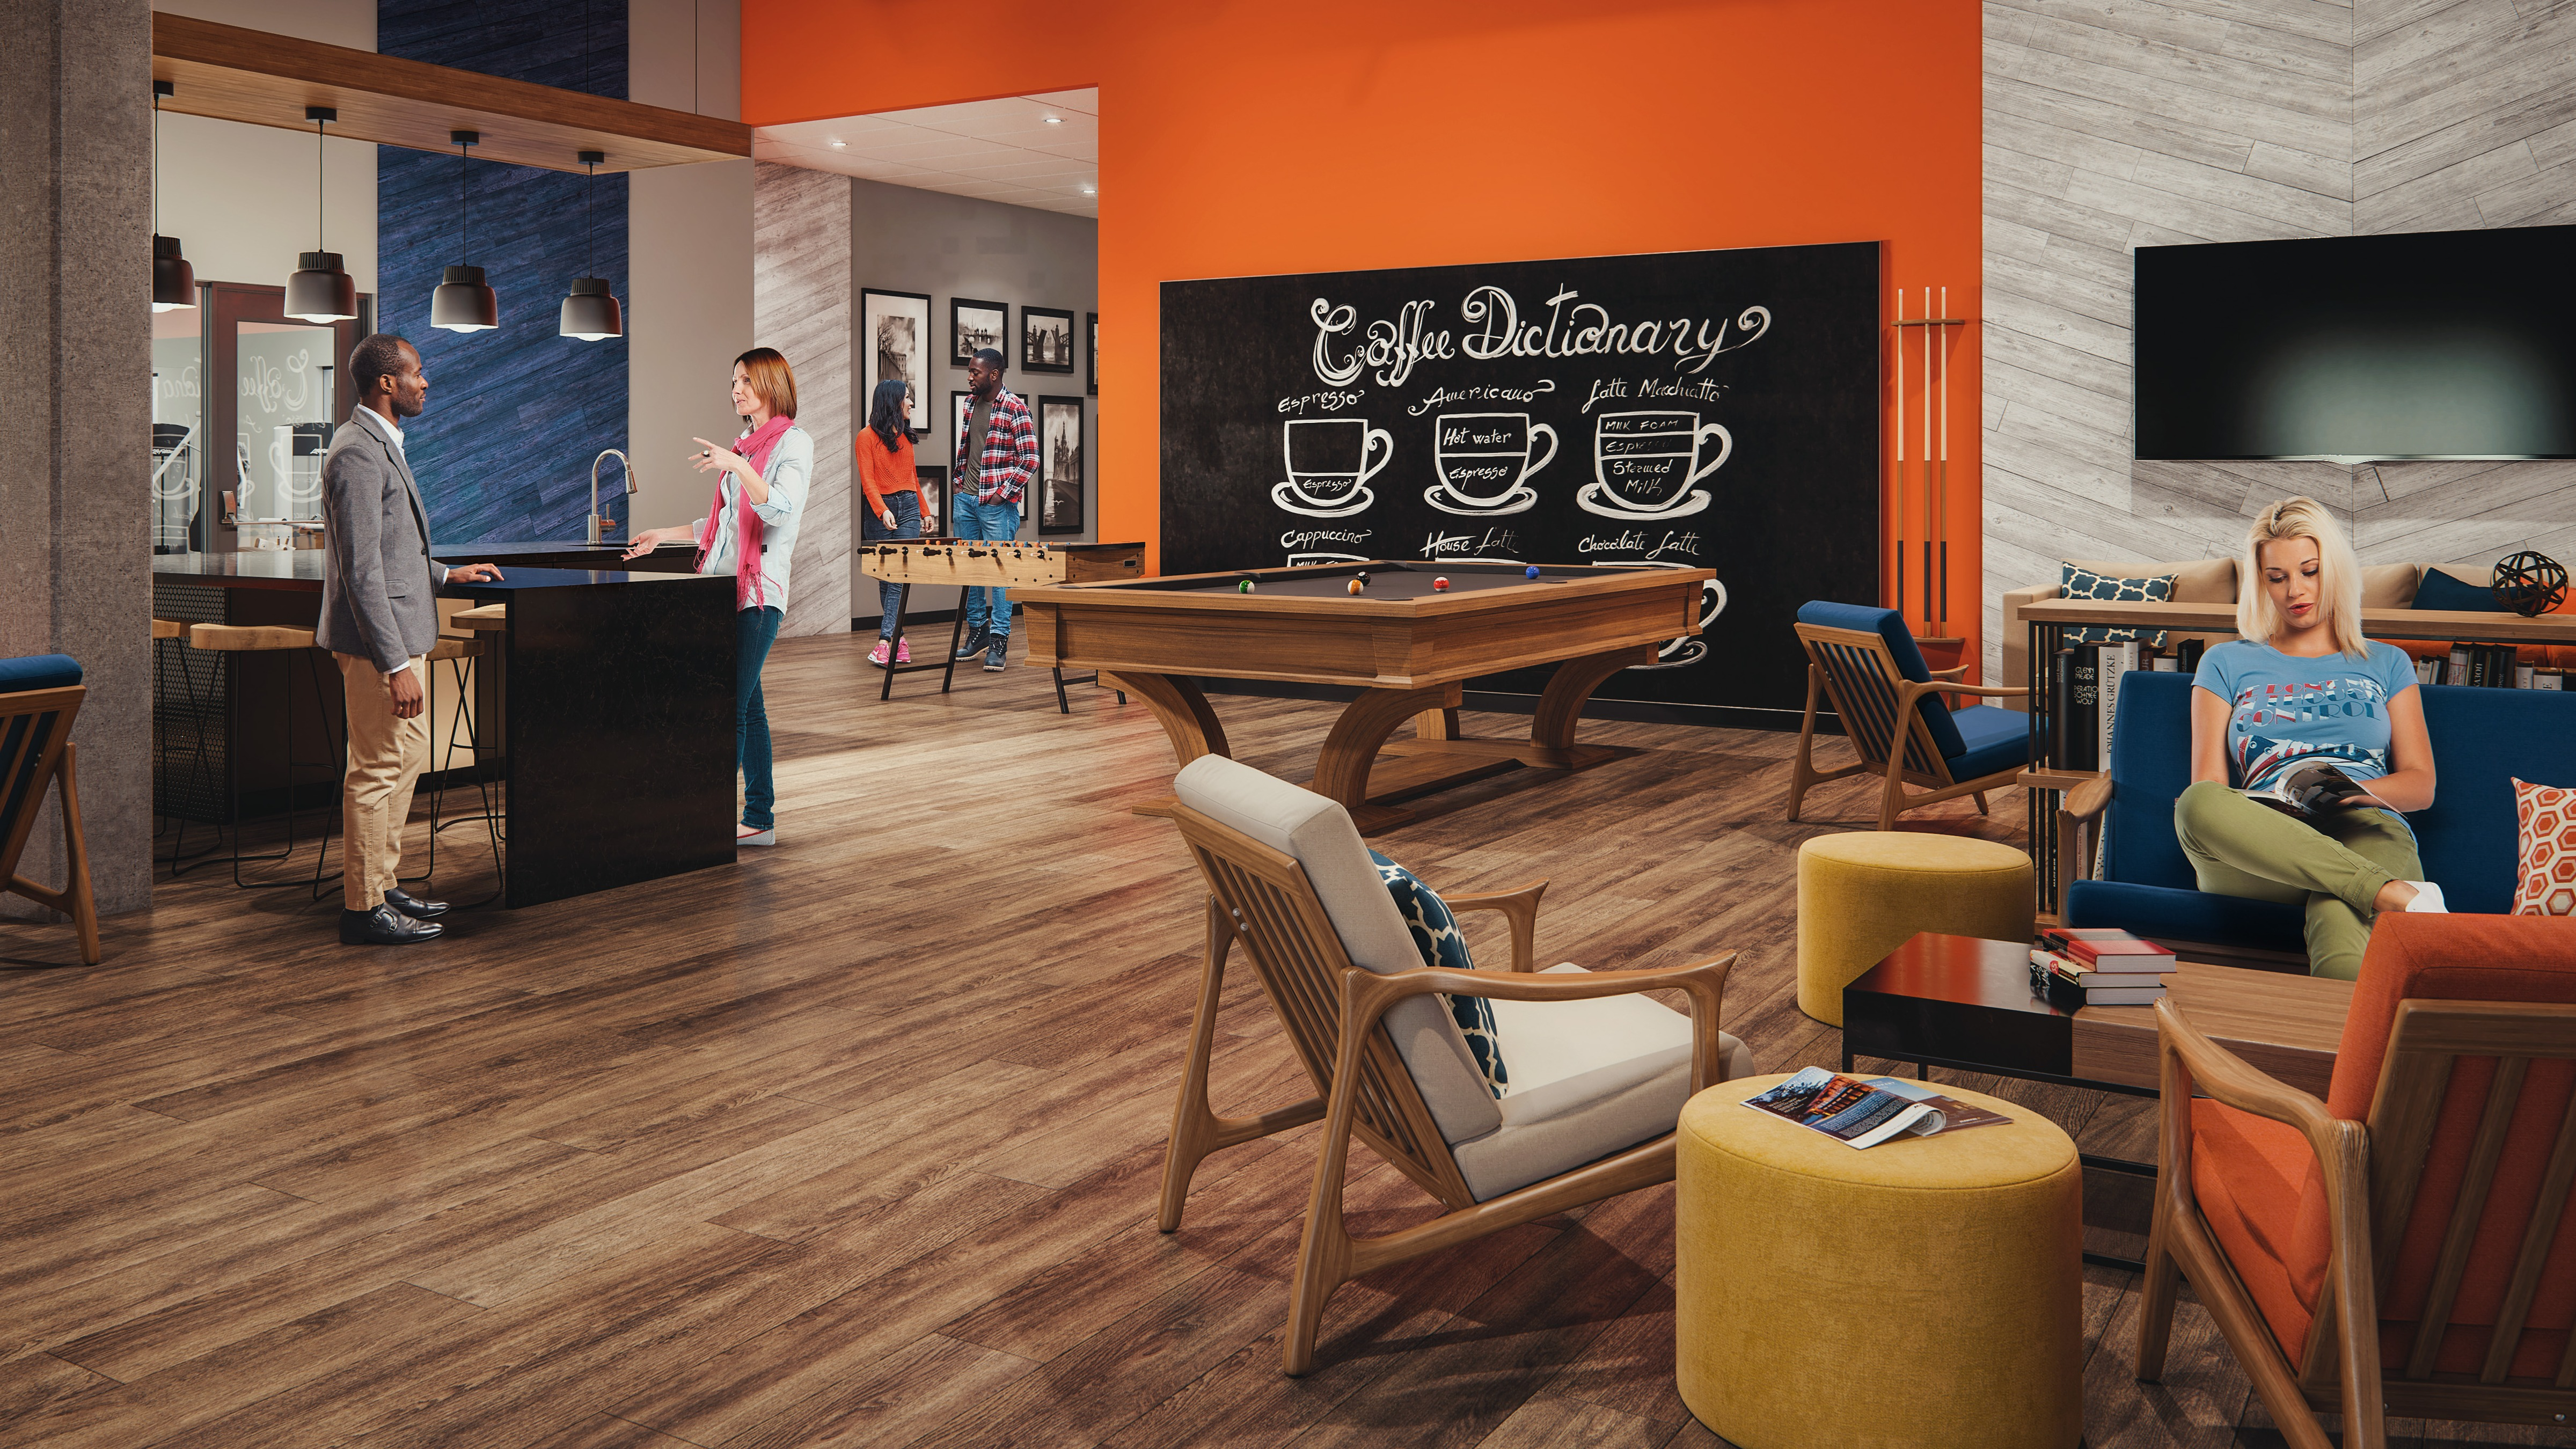 Rendering of amenities with pool table, lounge chairs and bar